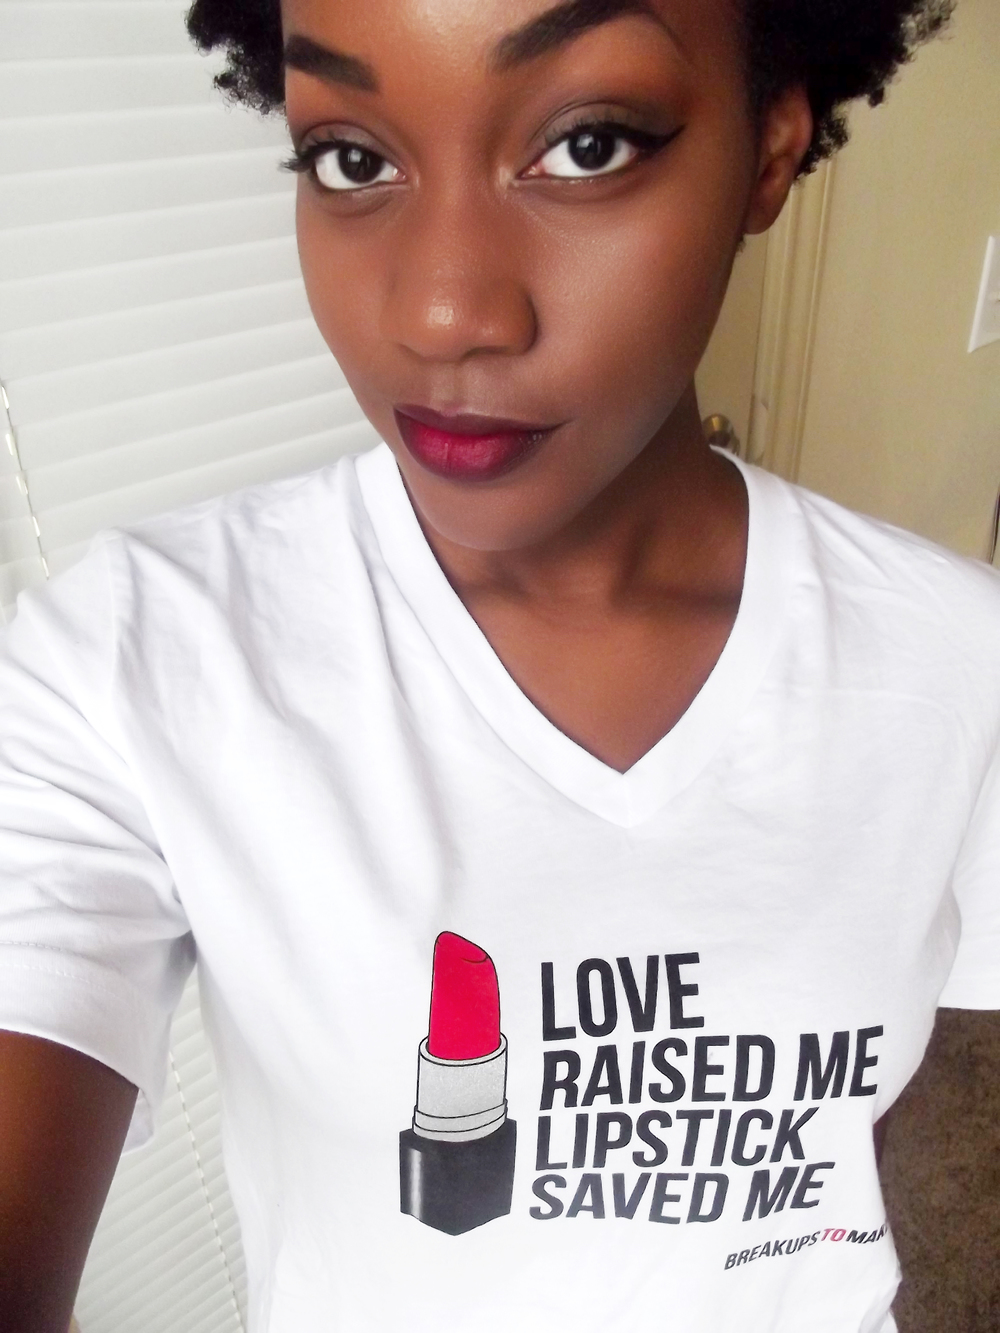 breakups-to-makeup-lipstick-shirt.jpg